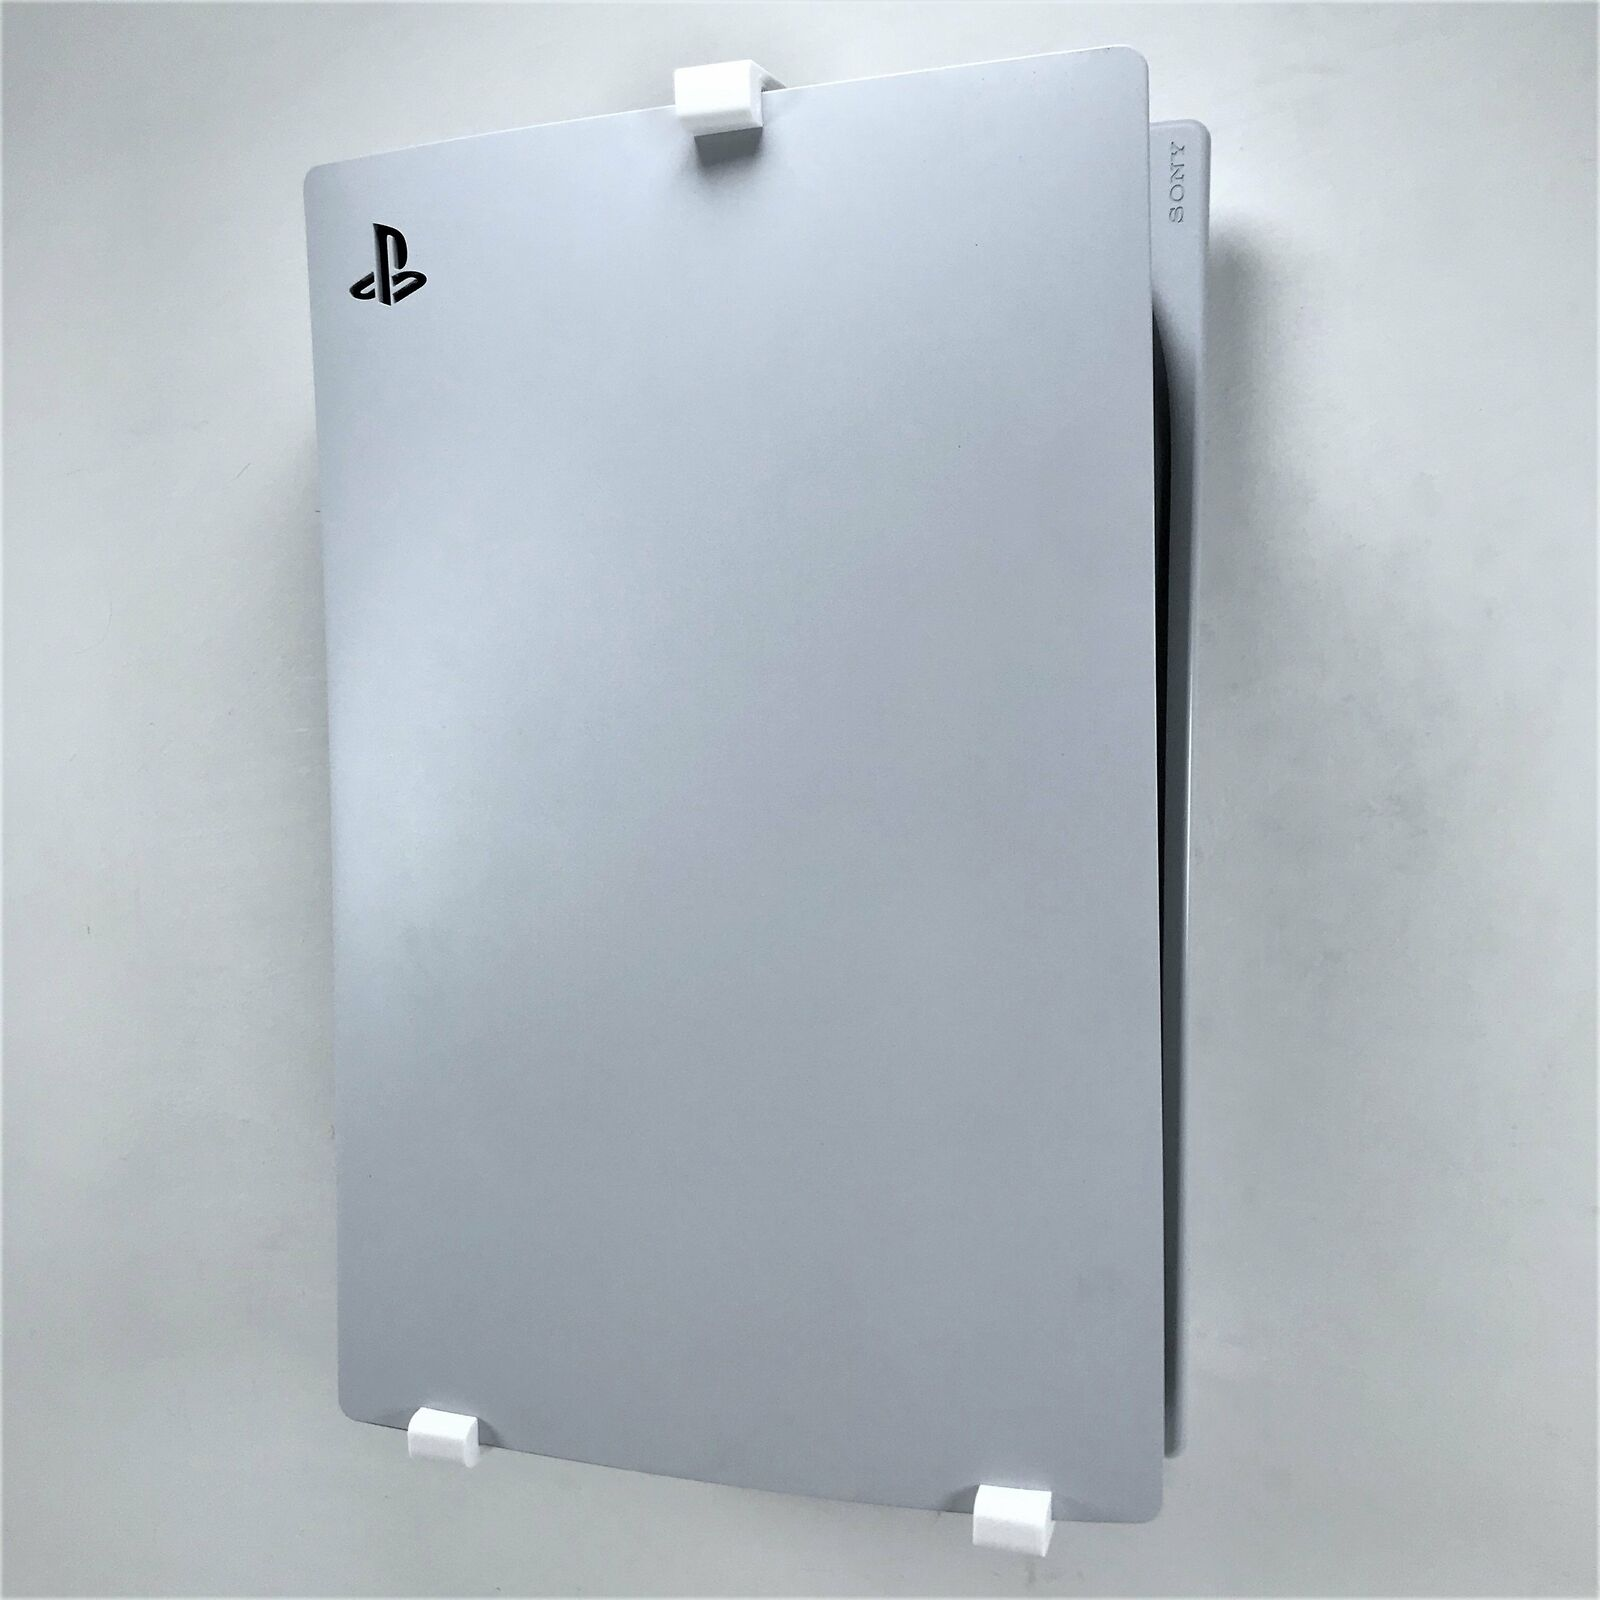 3D Cabin PS5 Wall Mount Wall Bracket Holder Stand For Play Station 5 Disc Triple